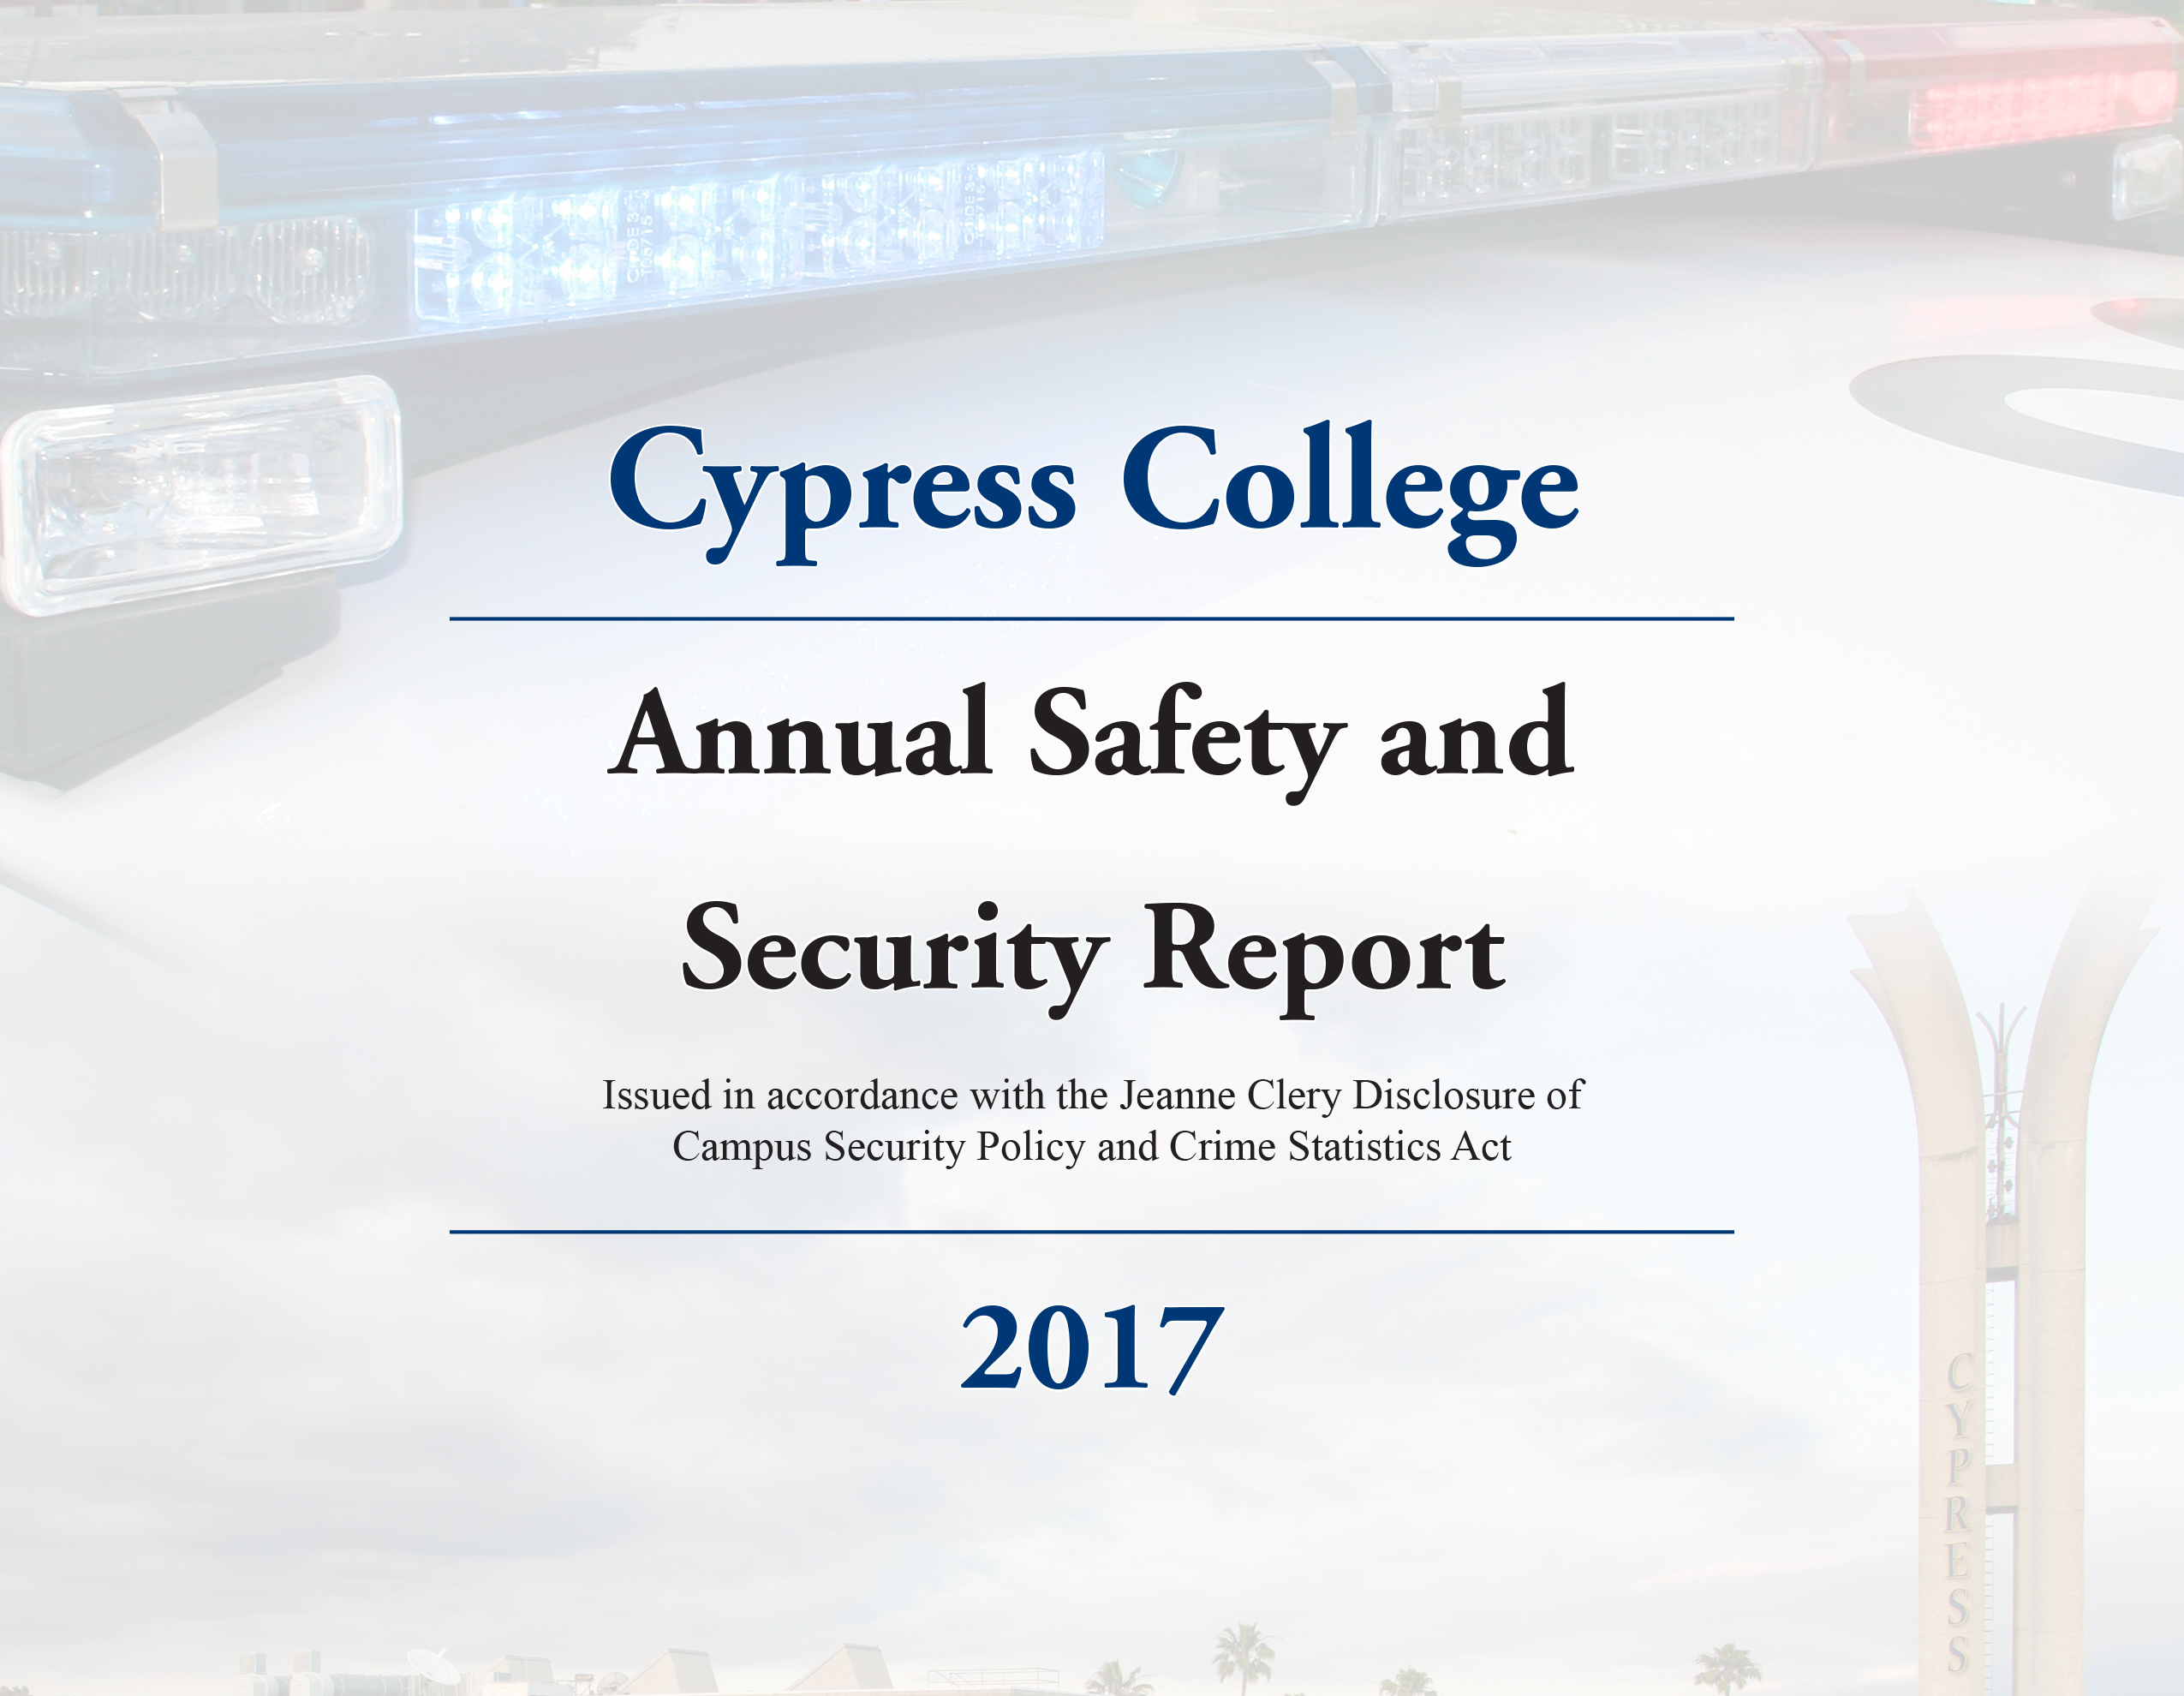 2017 Annual Safety and Security Report Now Available – Cypress College